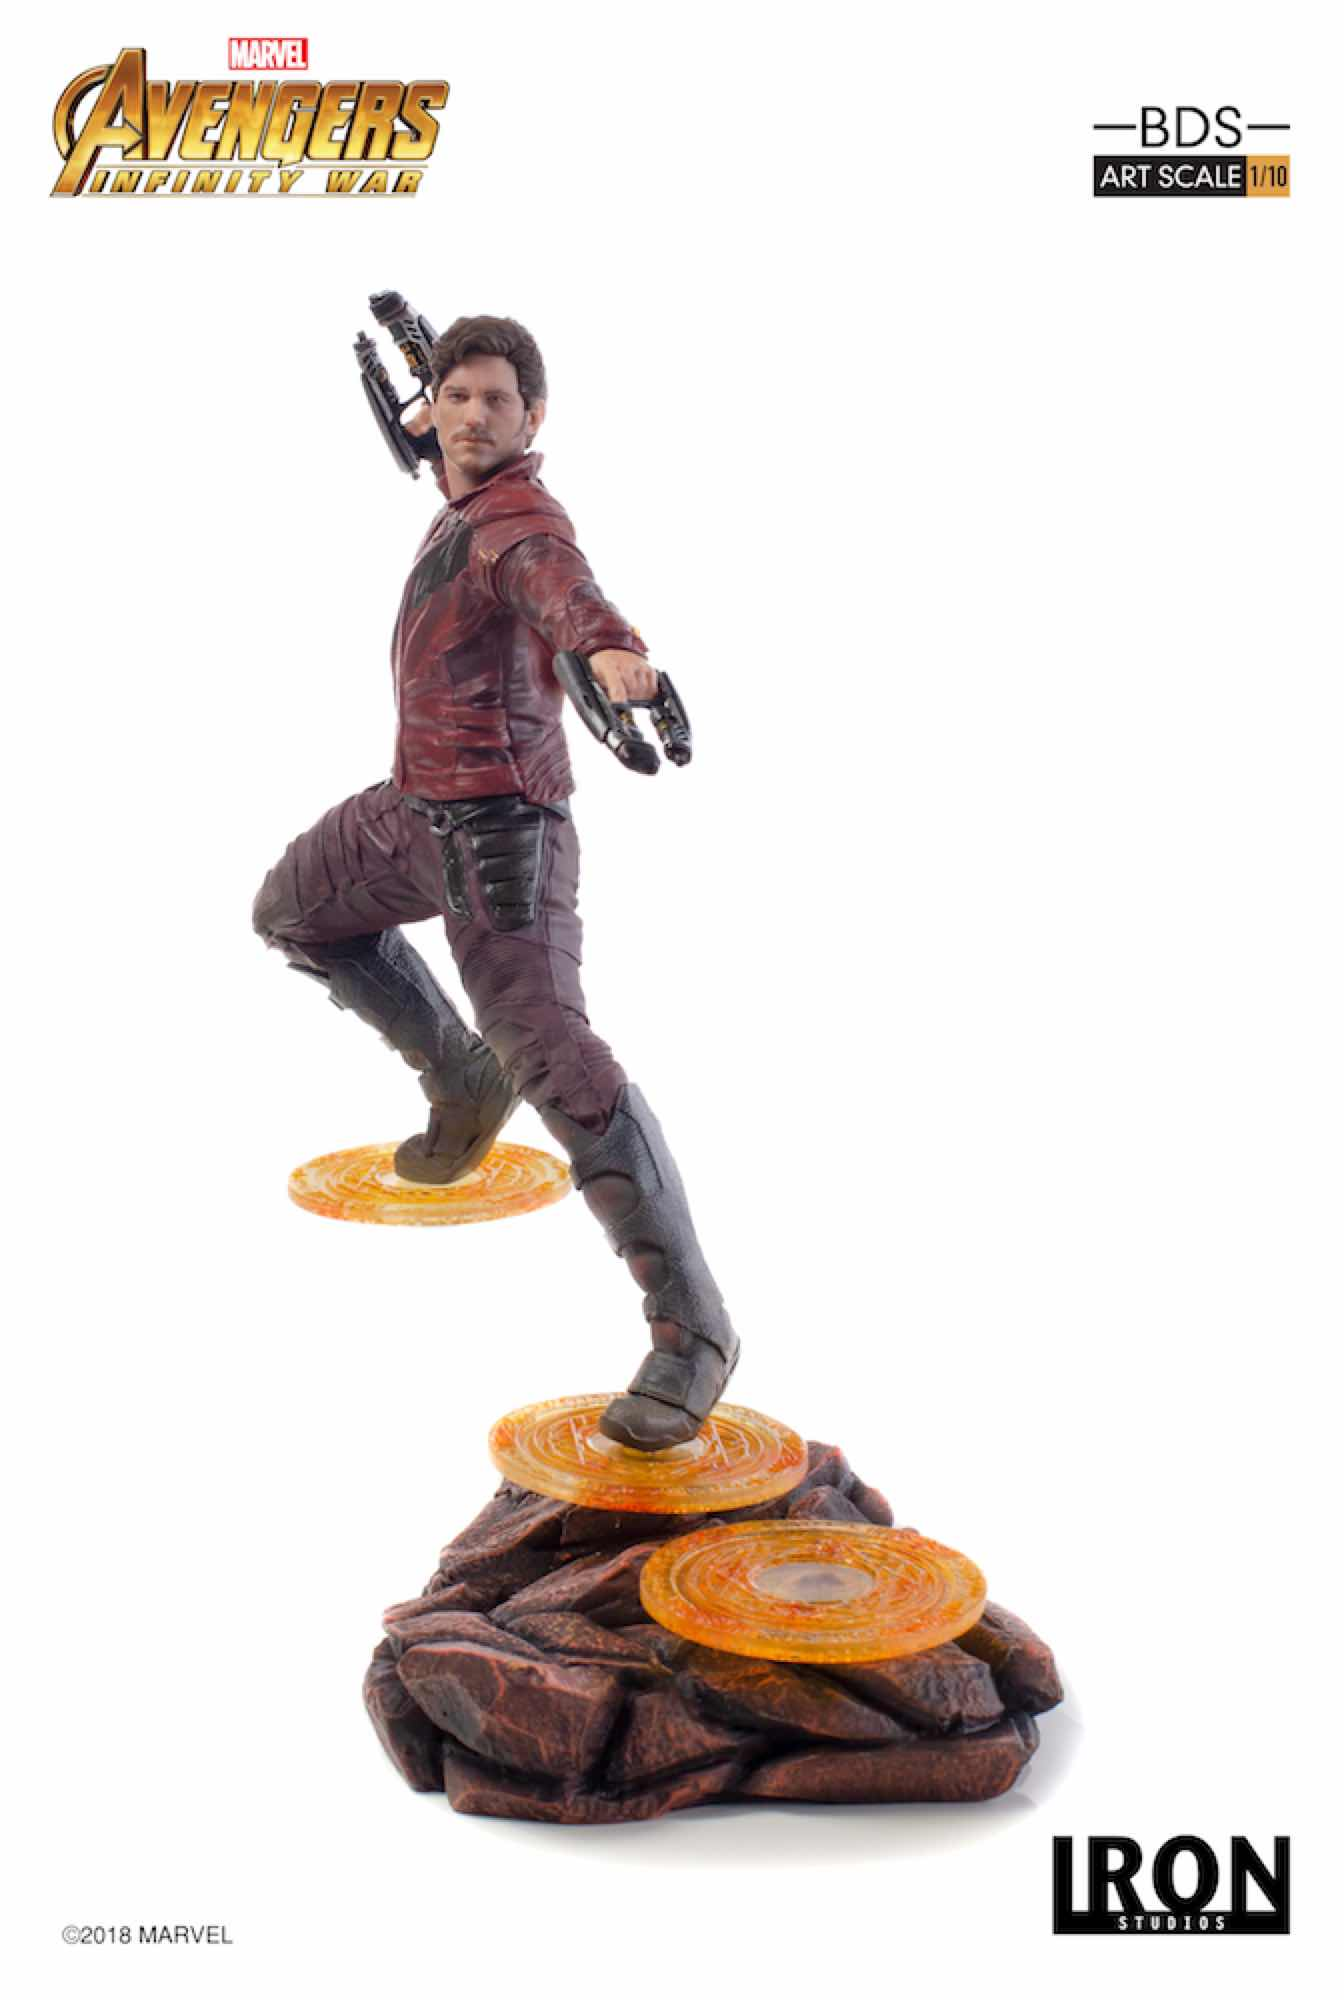 STAR-LORD FIG 23 CM AVENGERS INFINITY WAR IRON STUDIOS BDS 1/10 ART SCALE